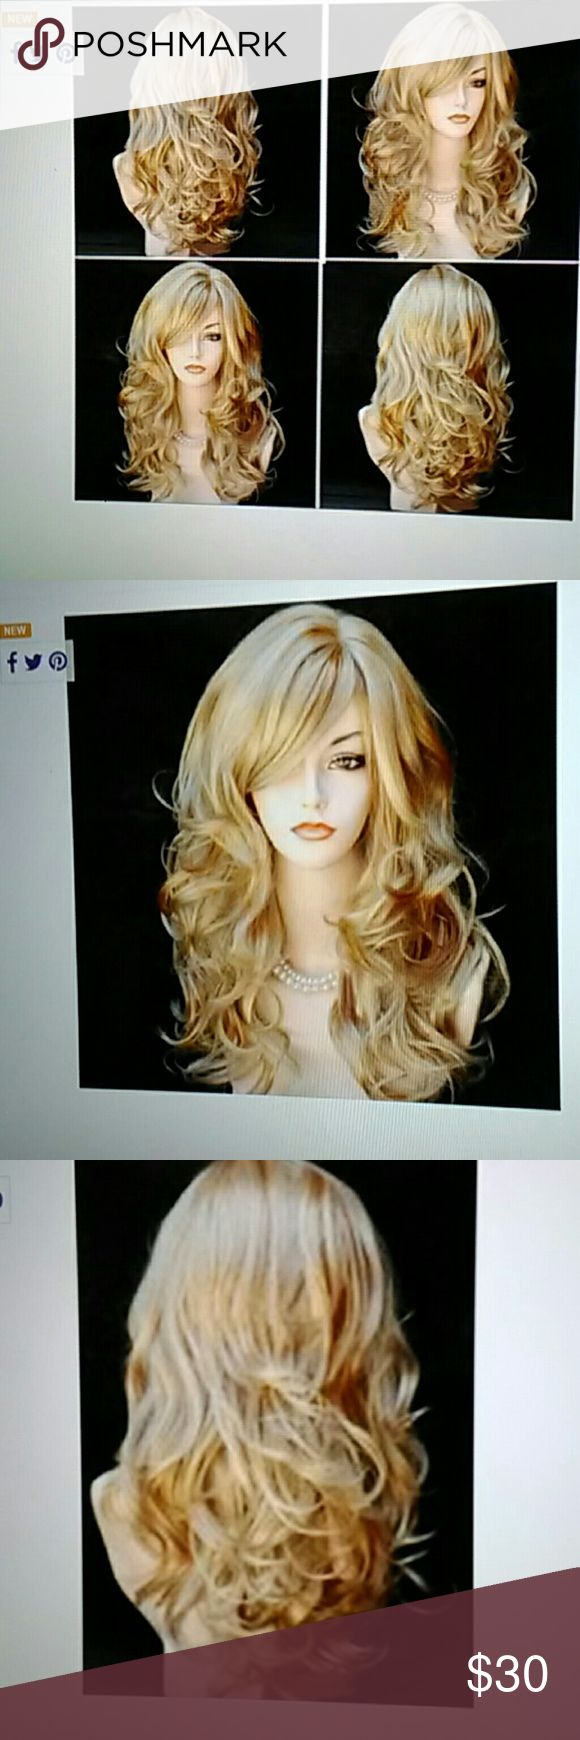 100% brand new long blonde wig 100% high quality high temperature Synthetic Fiber. Length- 25in. Accessories